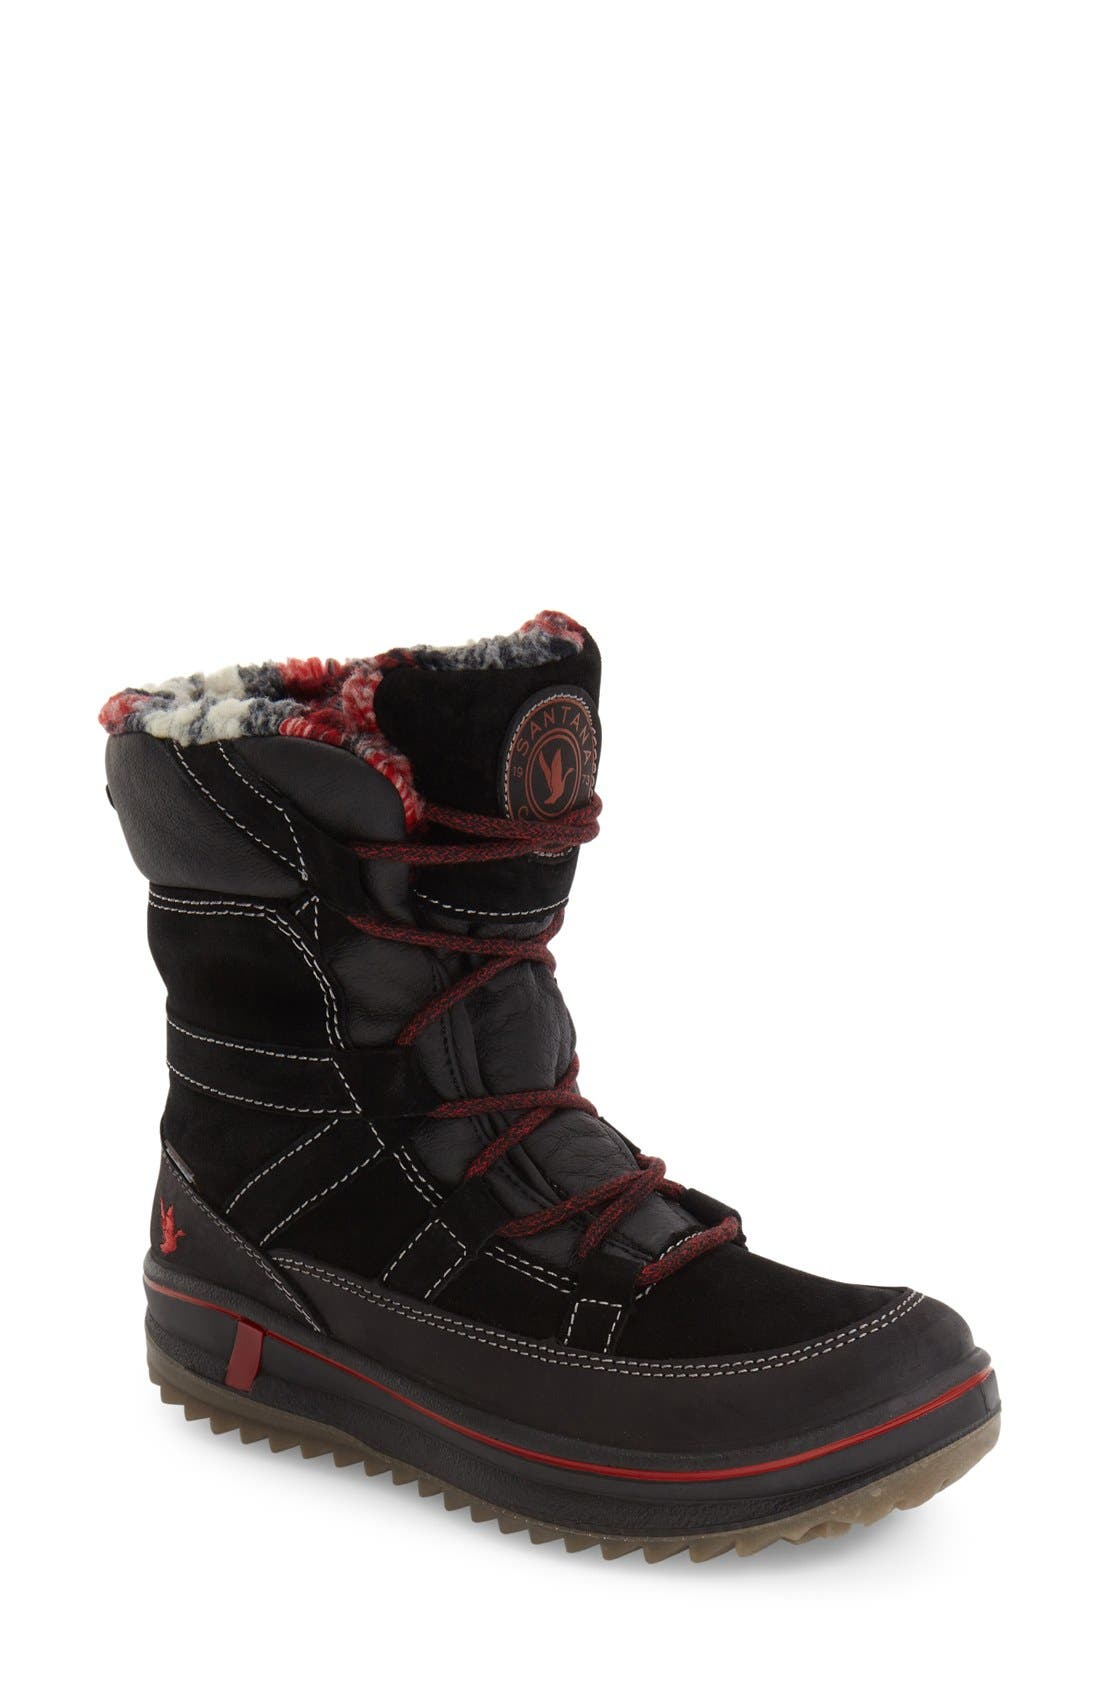 SANTANA CANADA Pike Waterproof Boot